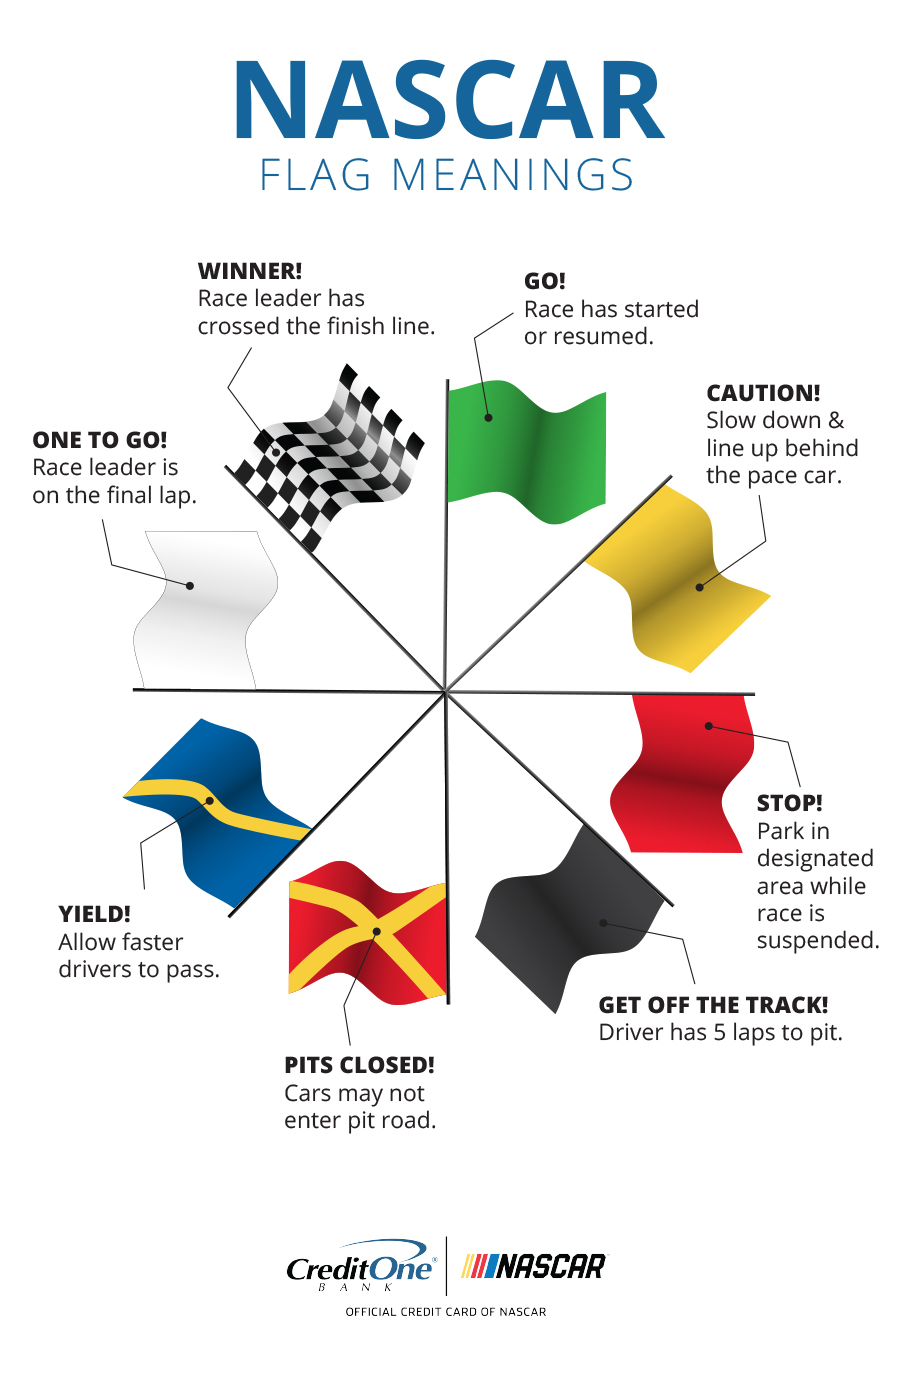 All in a Wave: The Meanings of 8 NASCAR Flags [Infographic]